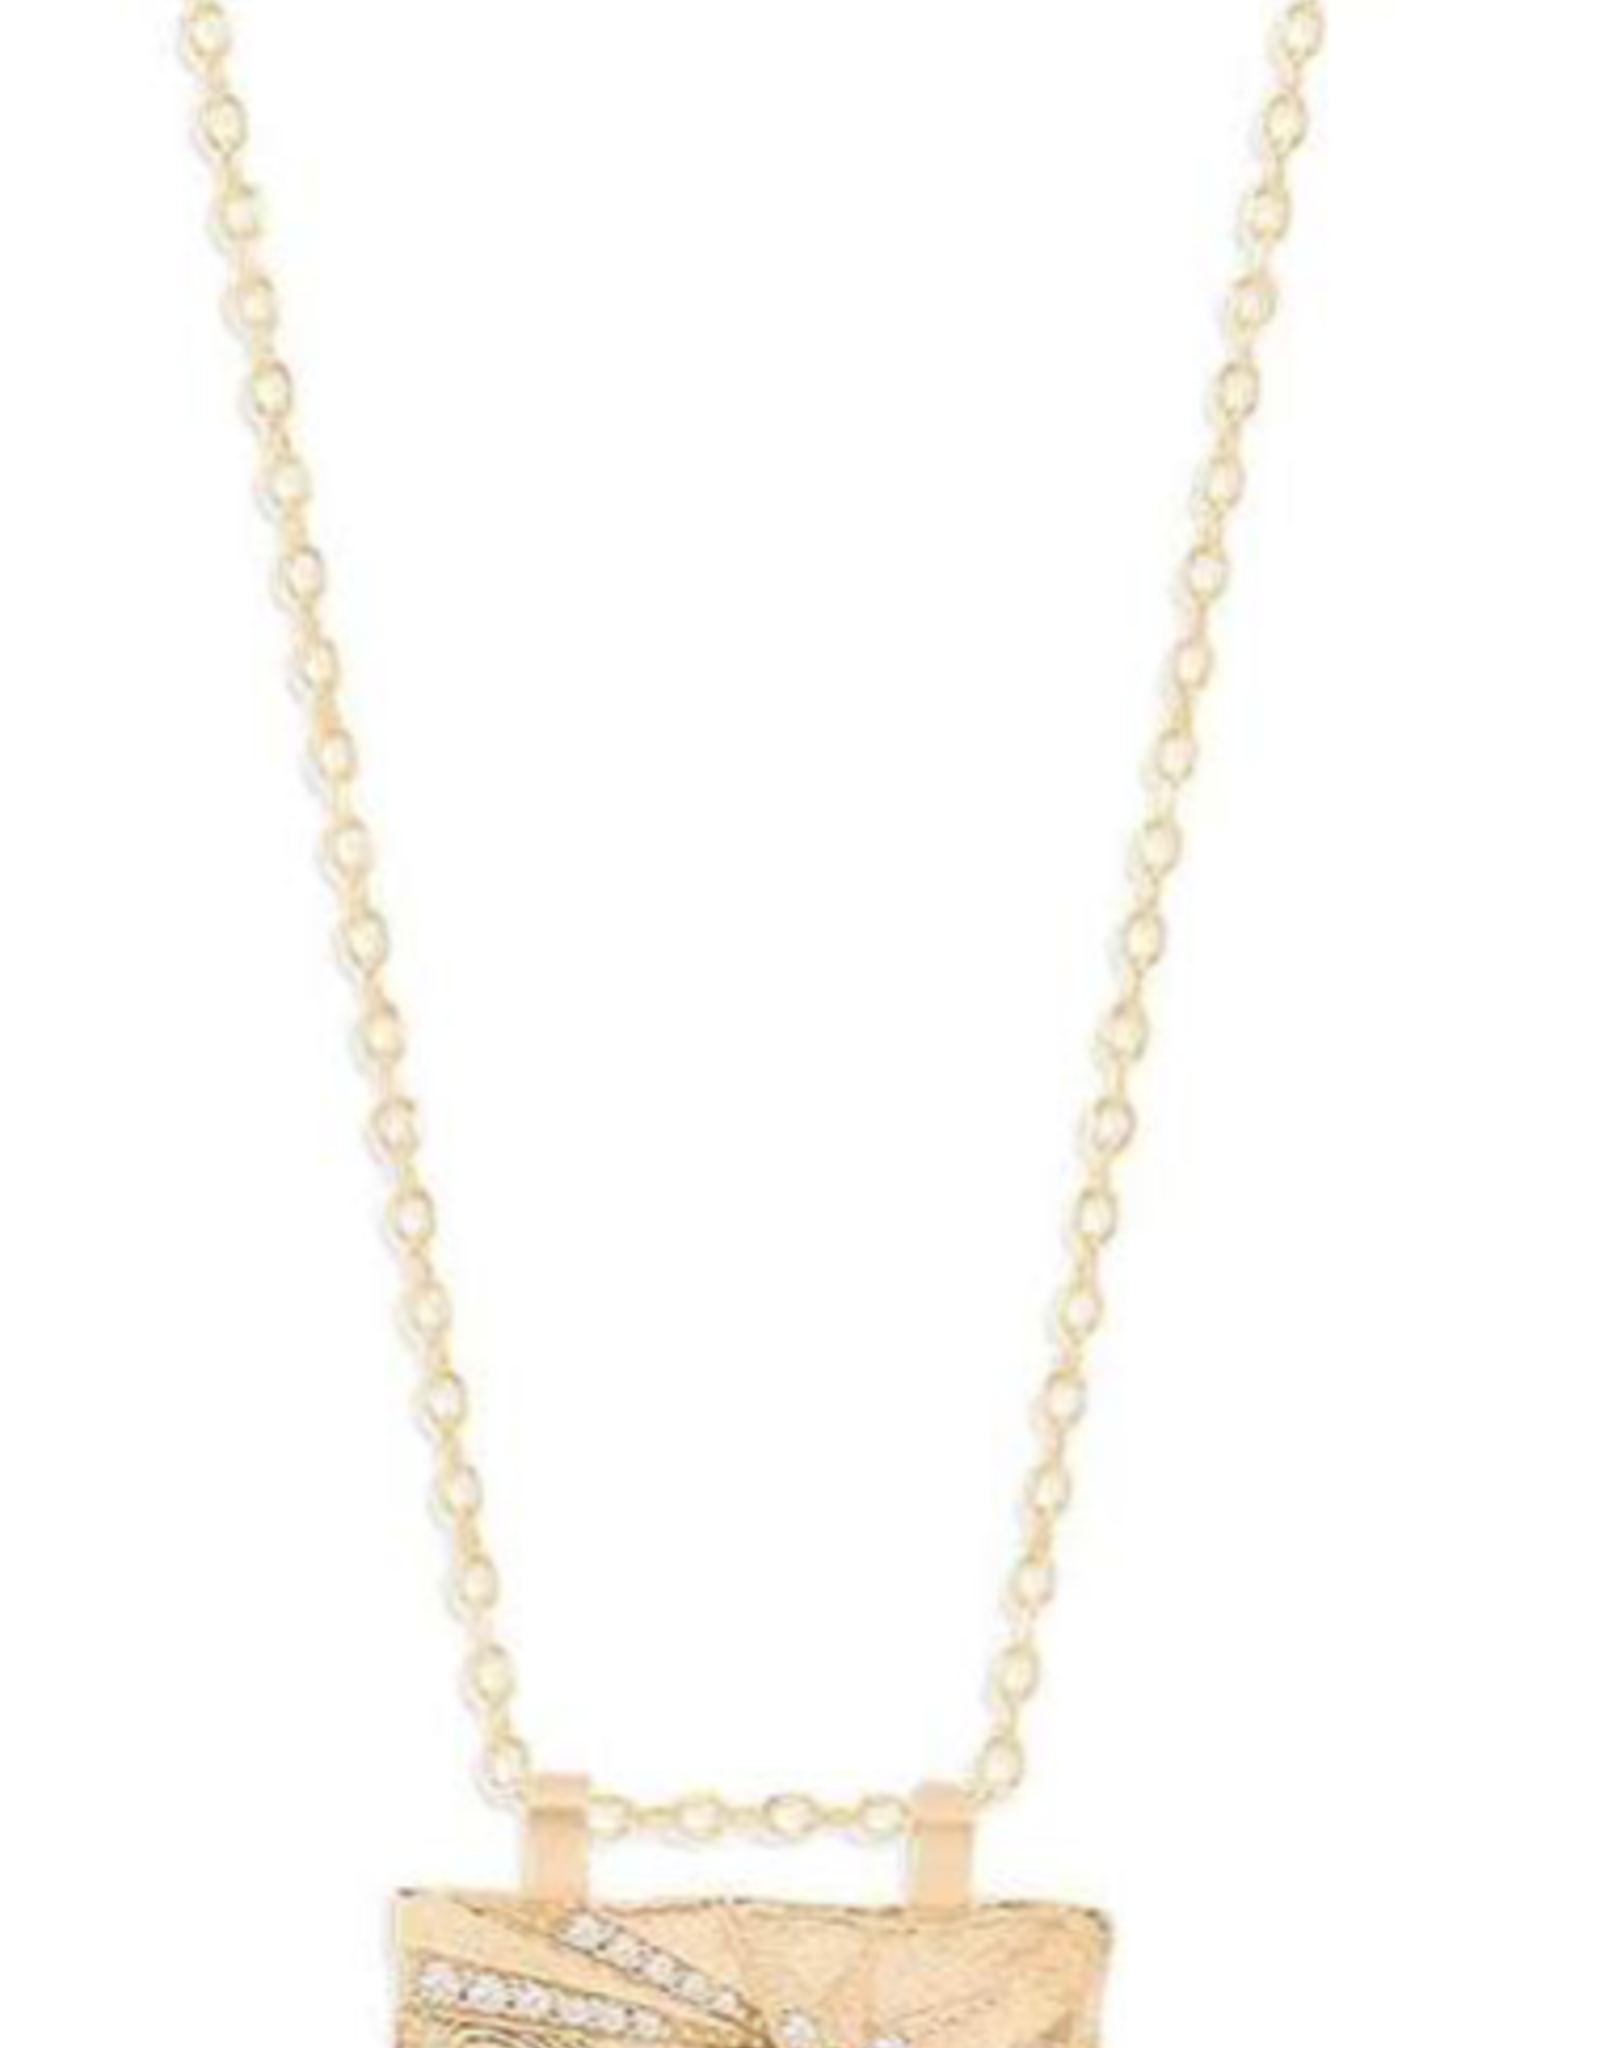 Charlotte Gold Wish Necklace